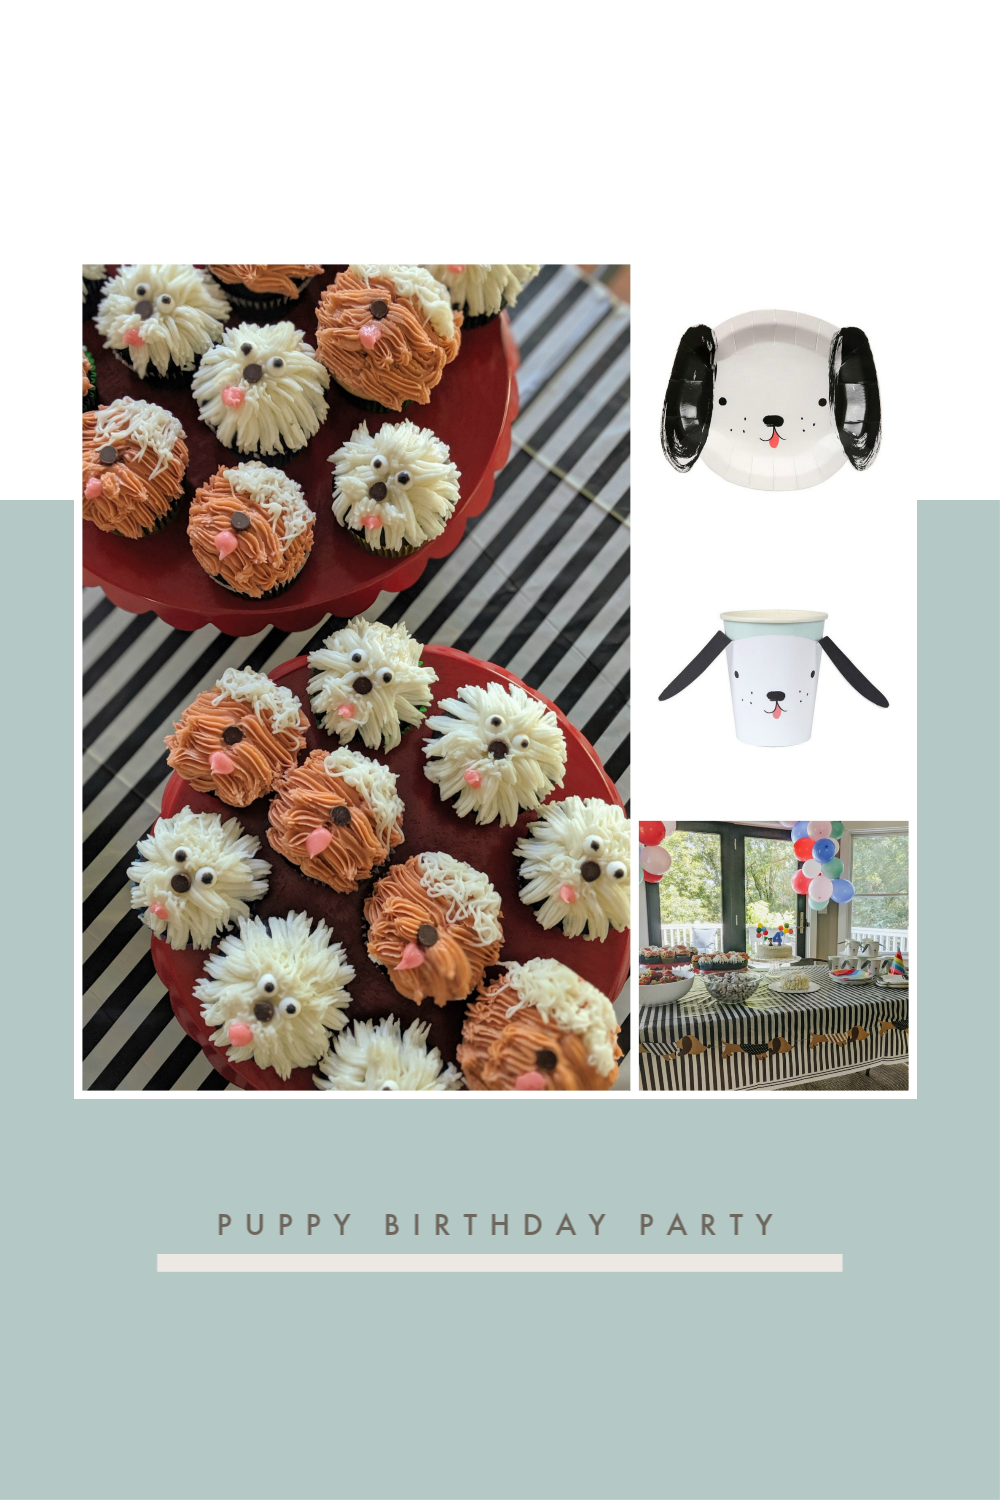 Puppy Birthday Party. Simple ideas for a puppy themed party..png